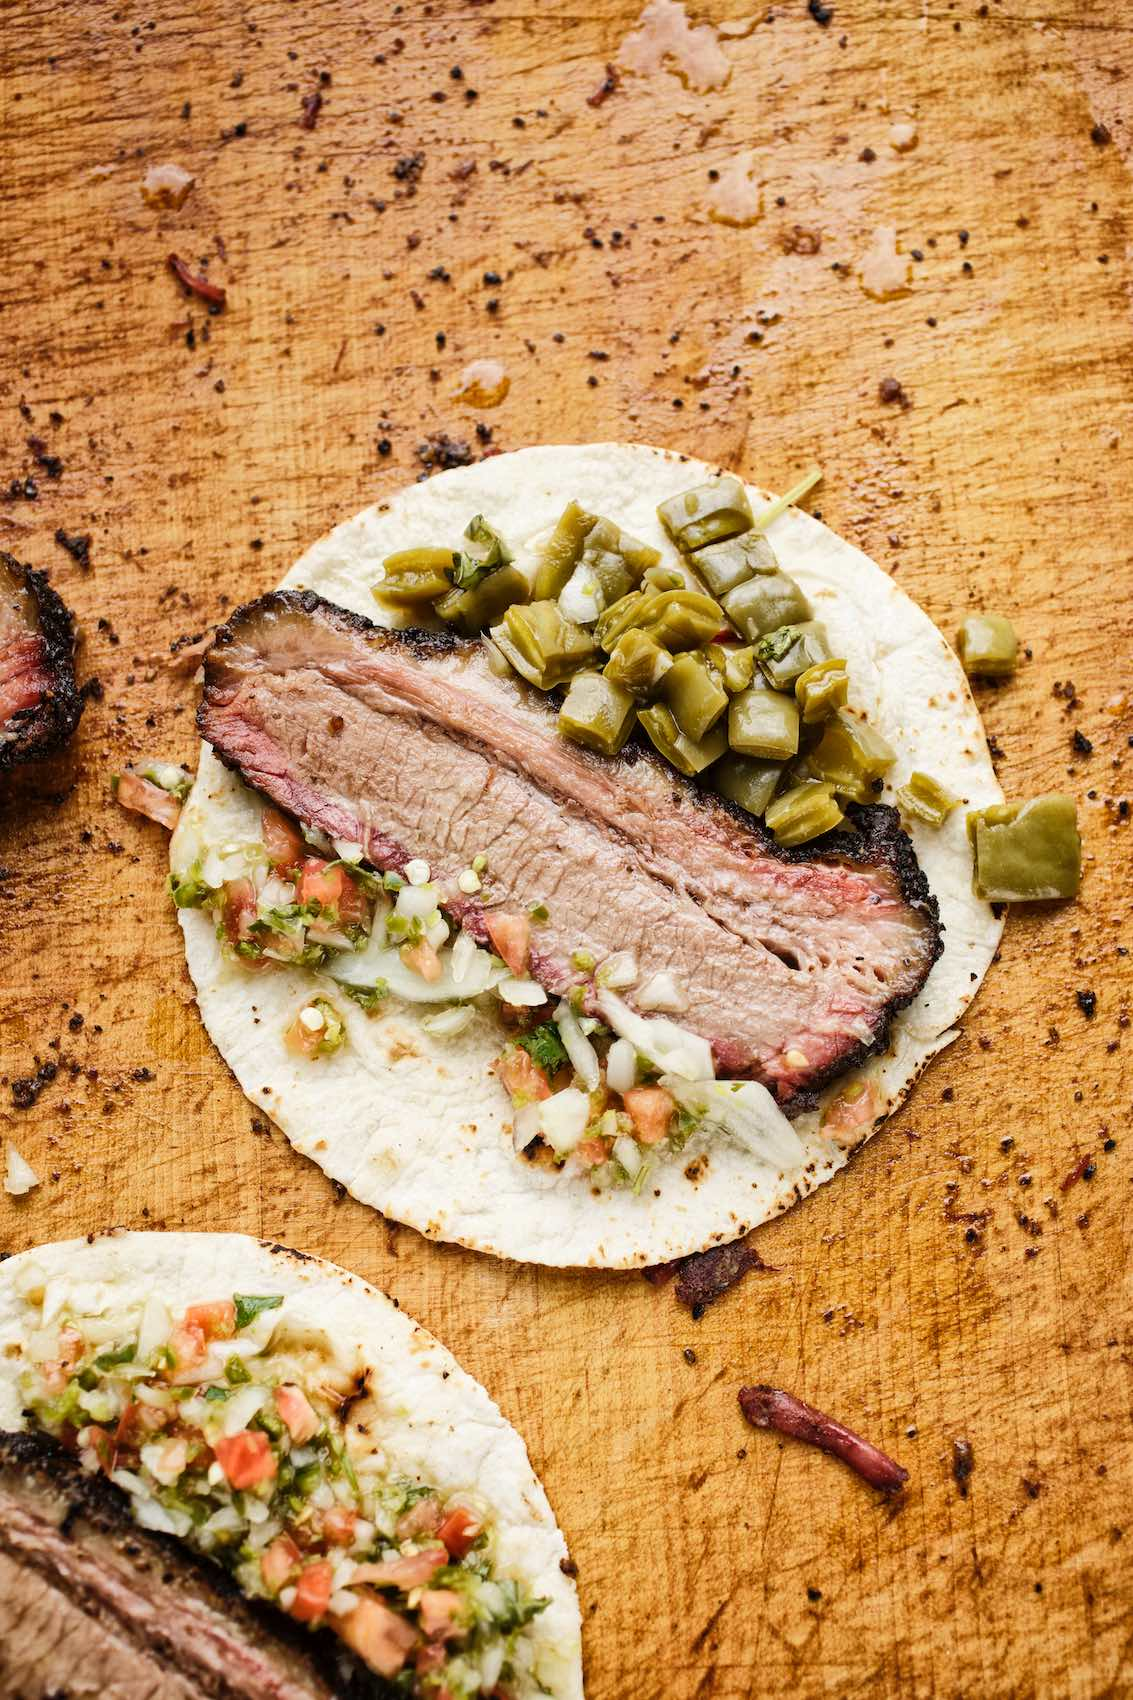 Jody Horton Photography - Brisket taco on wood cutting board.